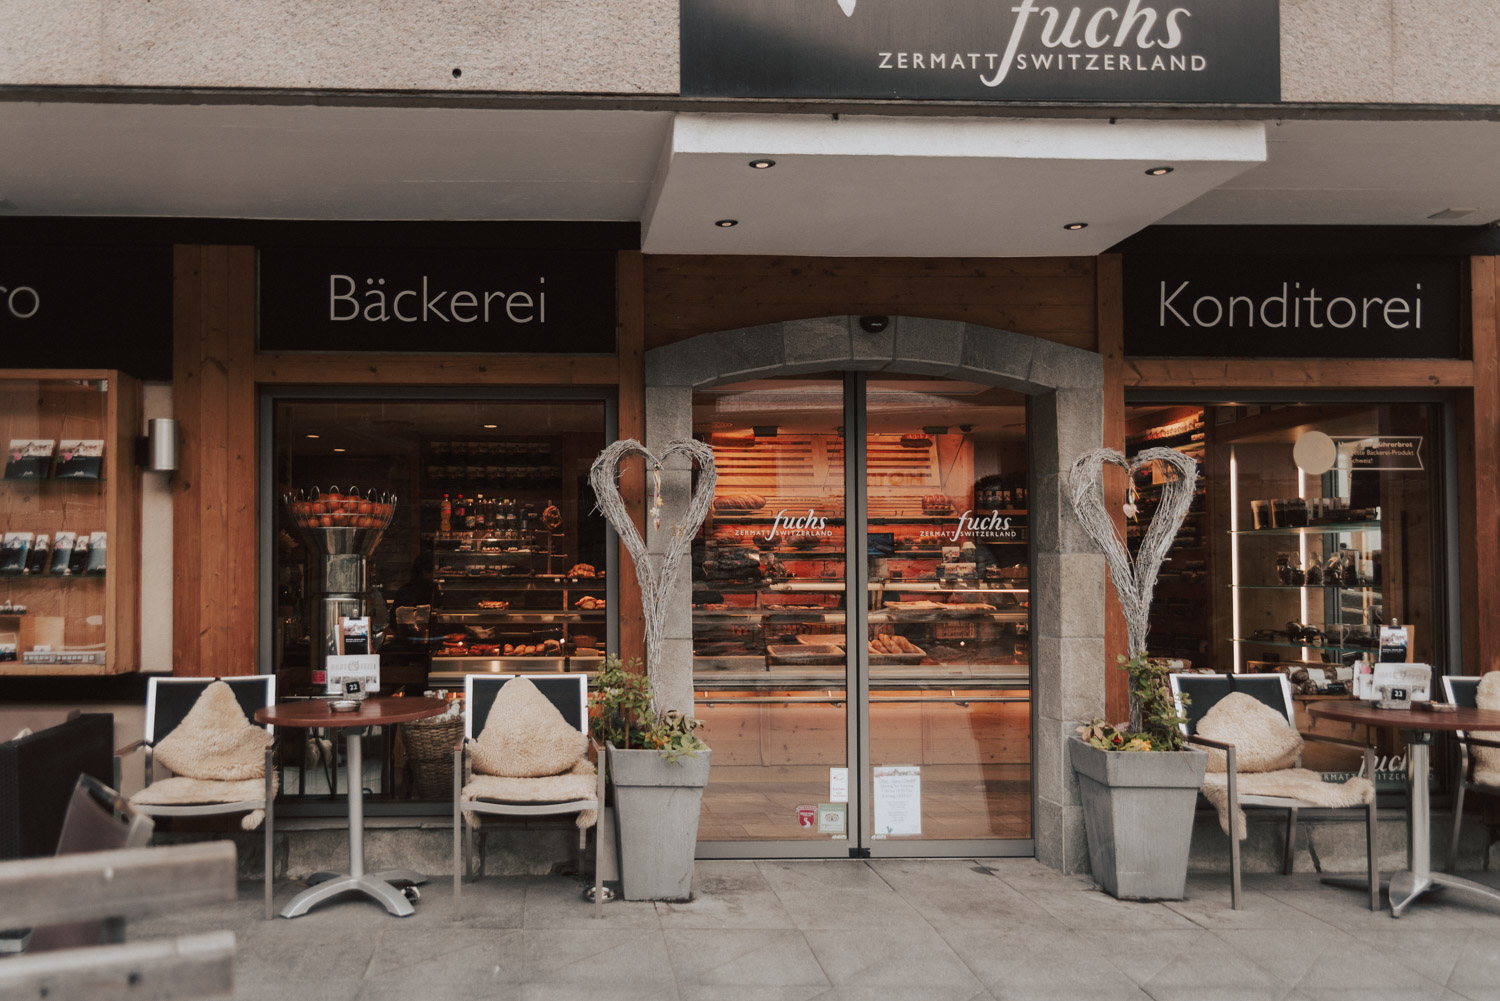 Fuchs Bistro and Bakery, Zermatt